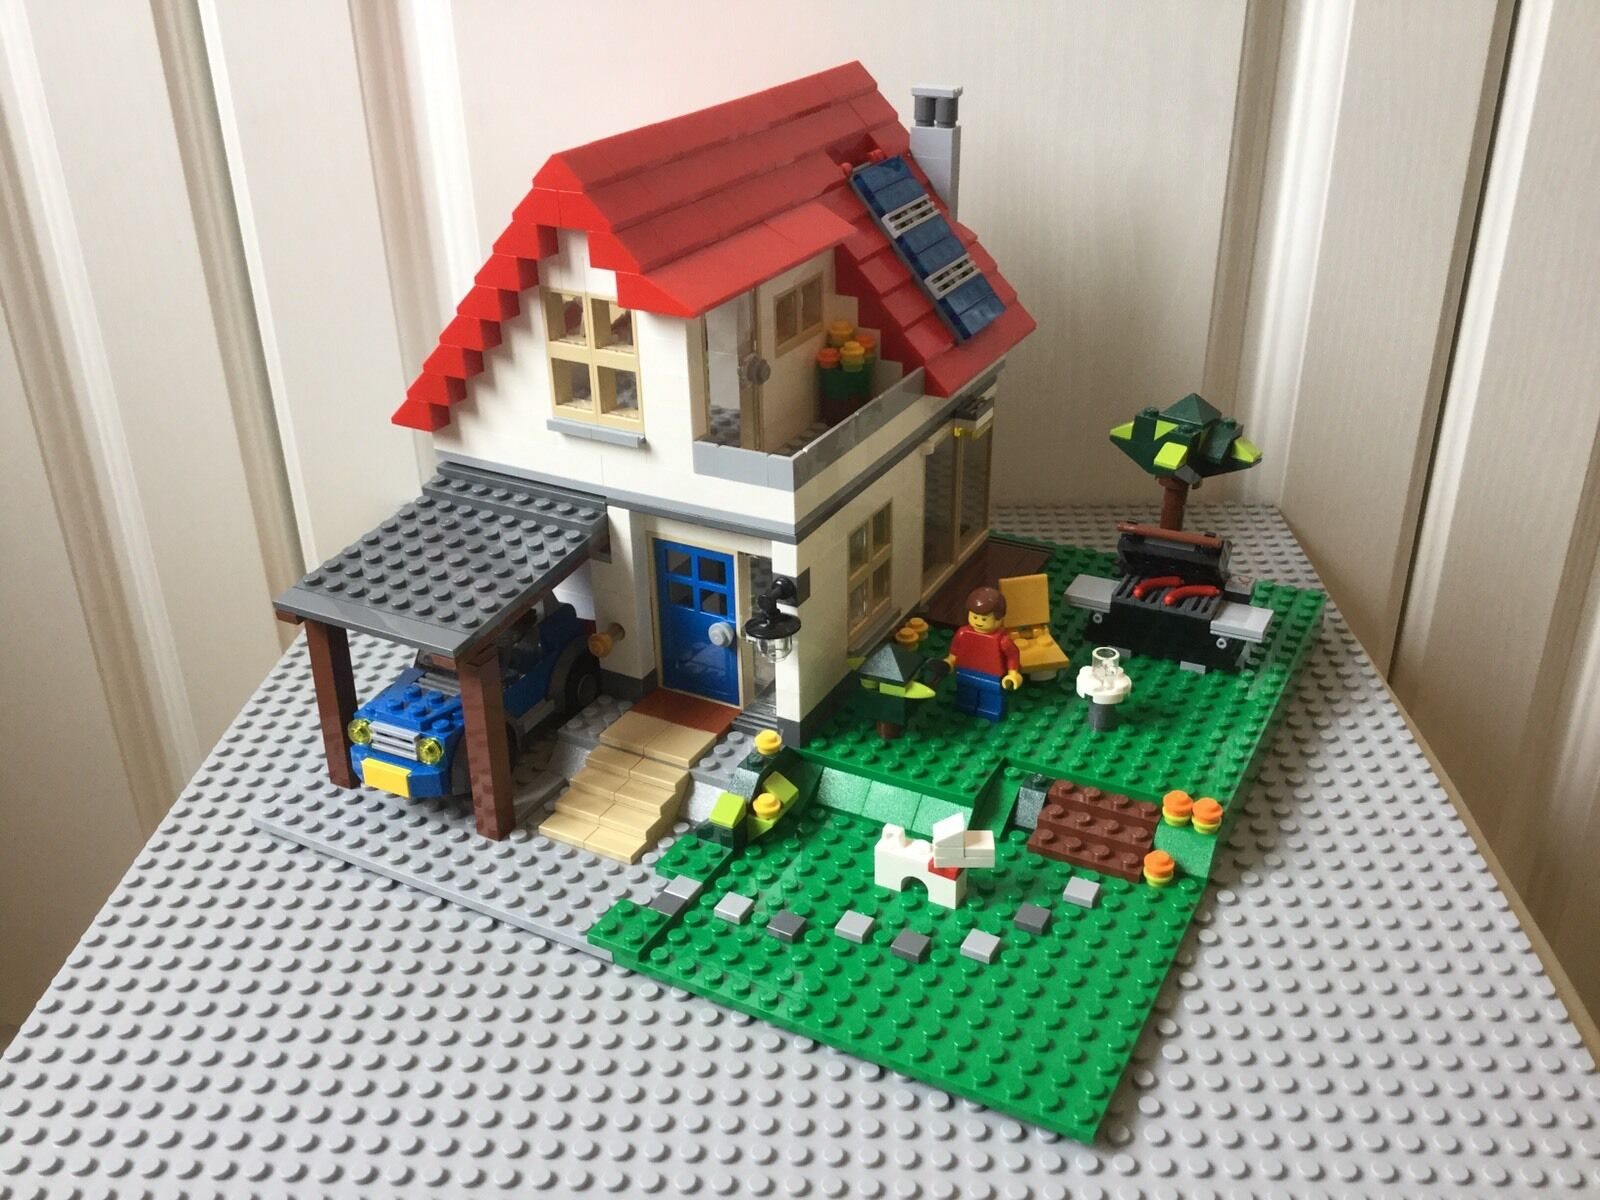 Lego Creator 5771 Hillside House 100% Complete + Instructions (3in1)